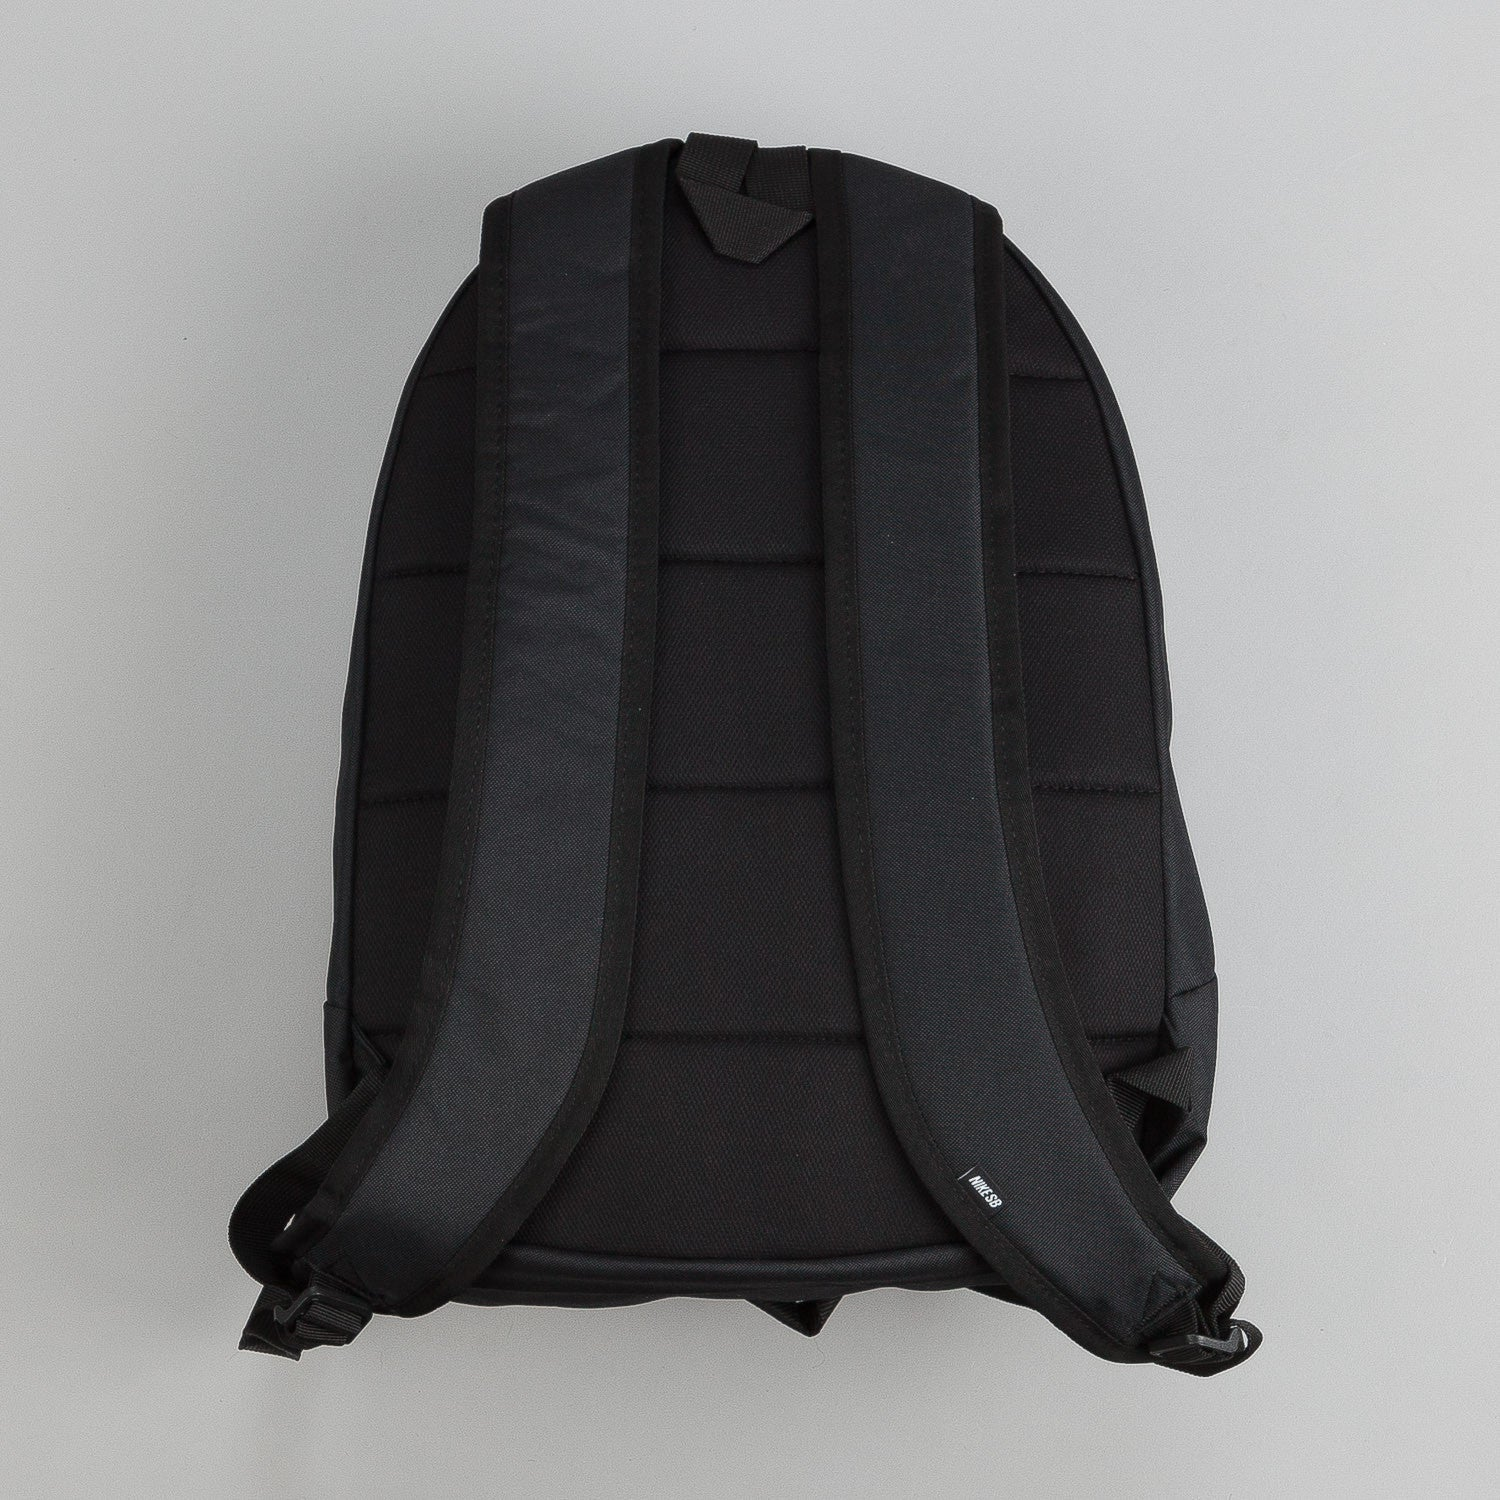 Nike SB Piedmont Backpack - Black / Black